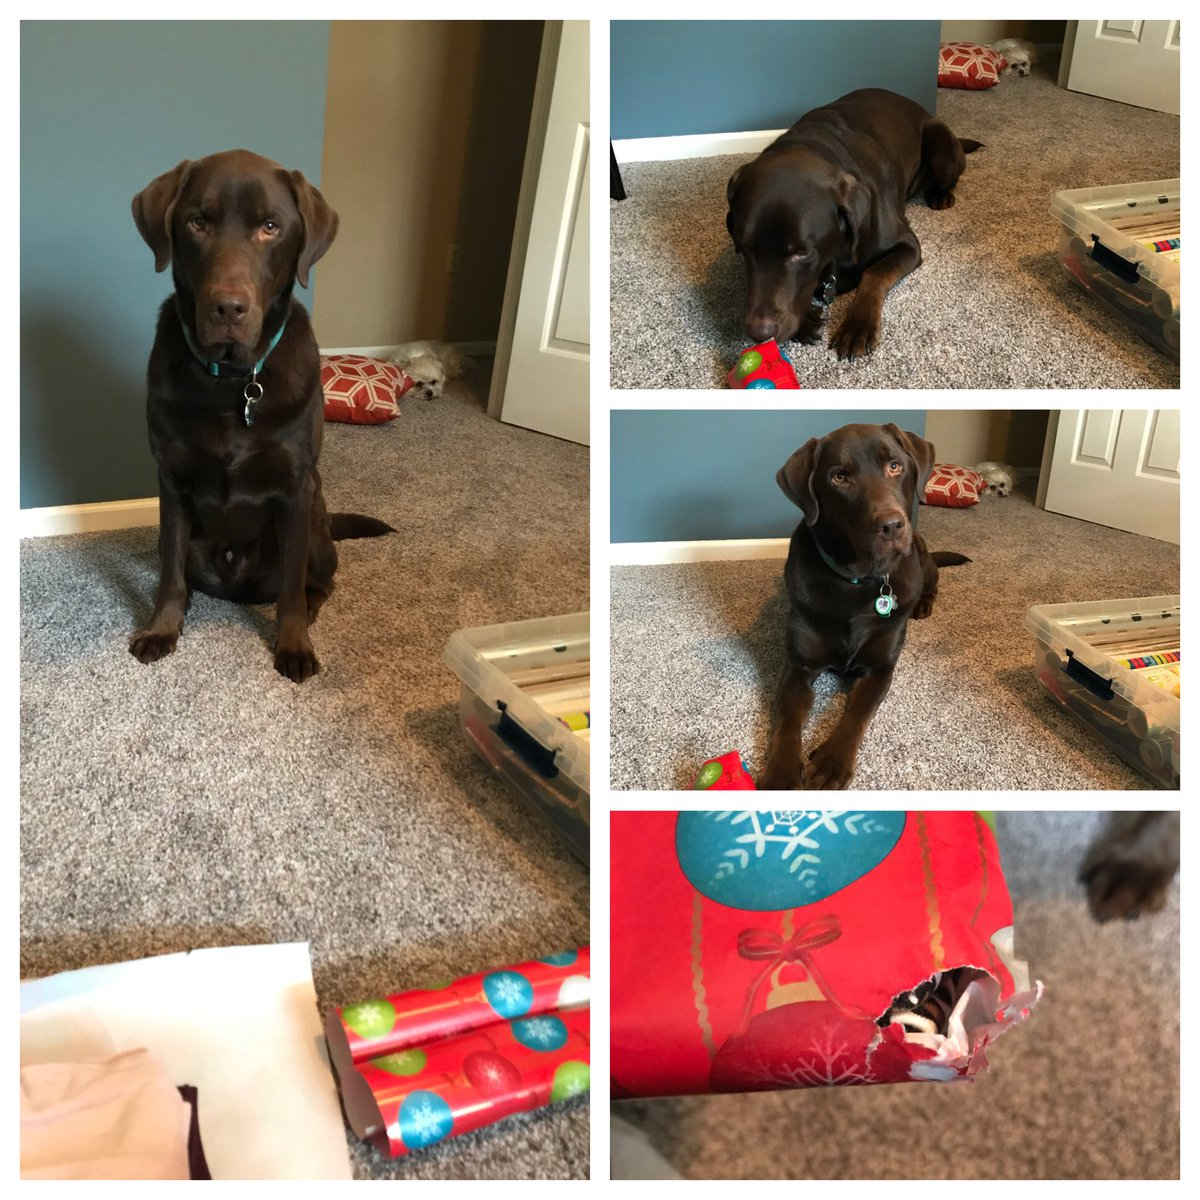 My elves 'helping' to wrap gifts. One elf is opening my niece's presents as I wrap and the other elf (in the background) is napping on the job. 🥰💙🐶🎁